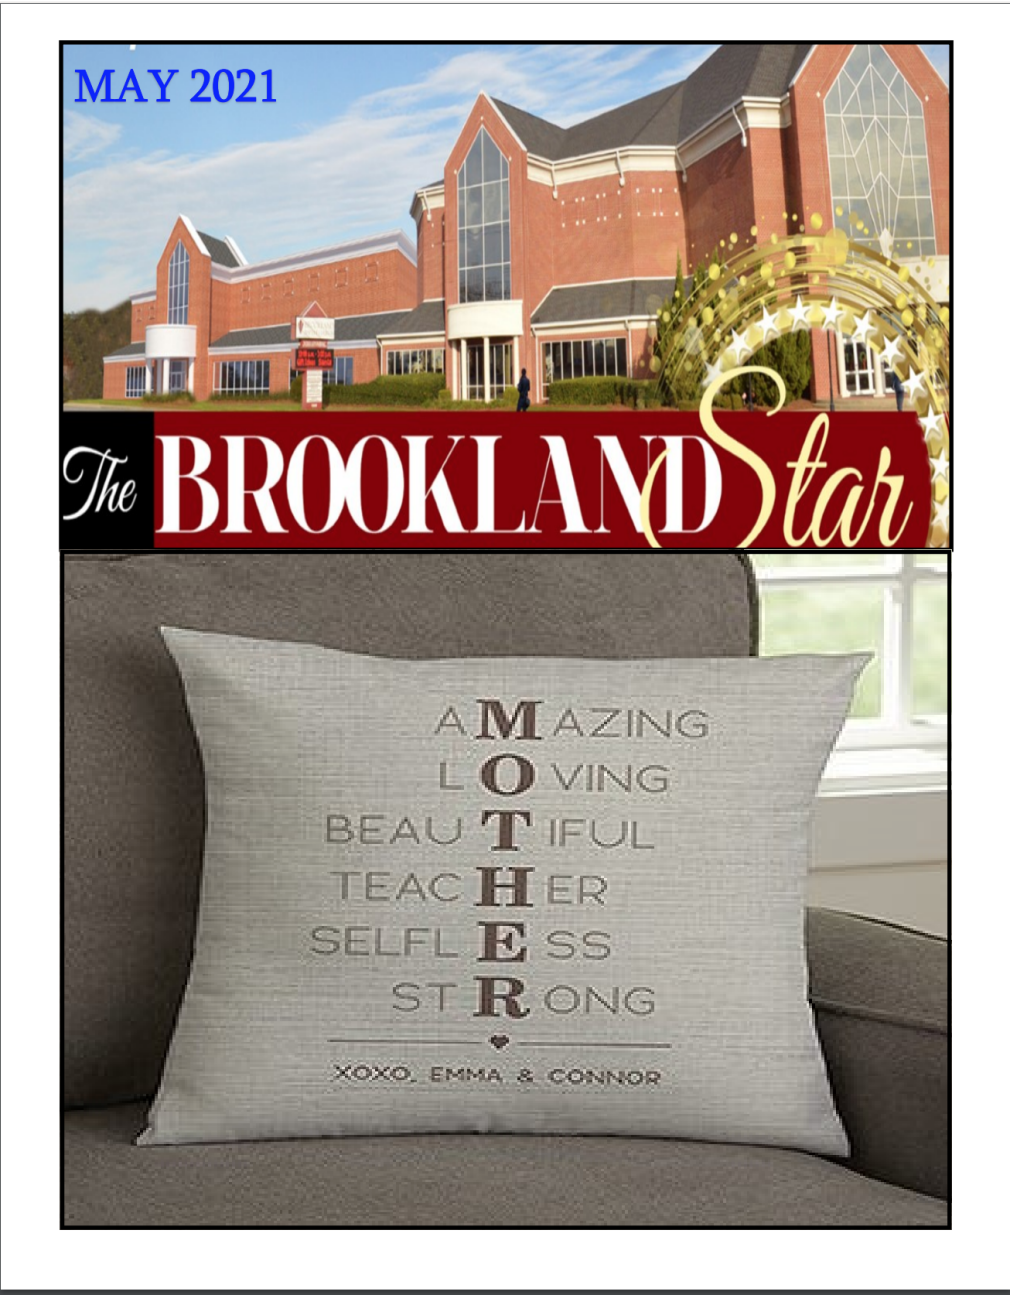 The Brookland Star May 2021 Edition